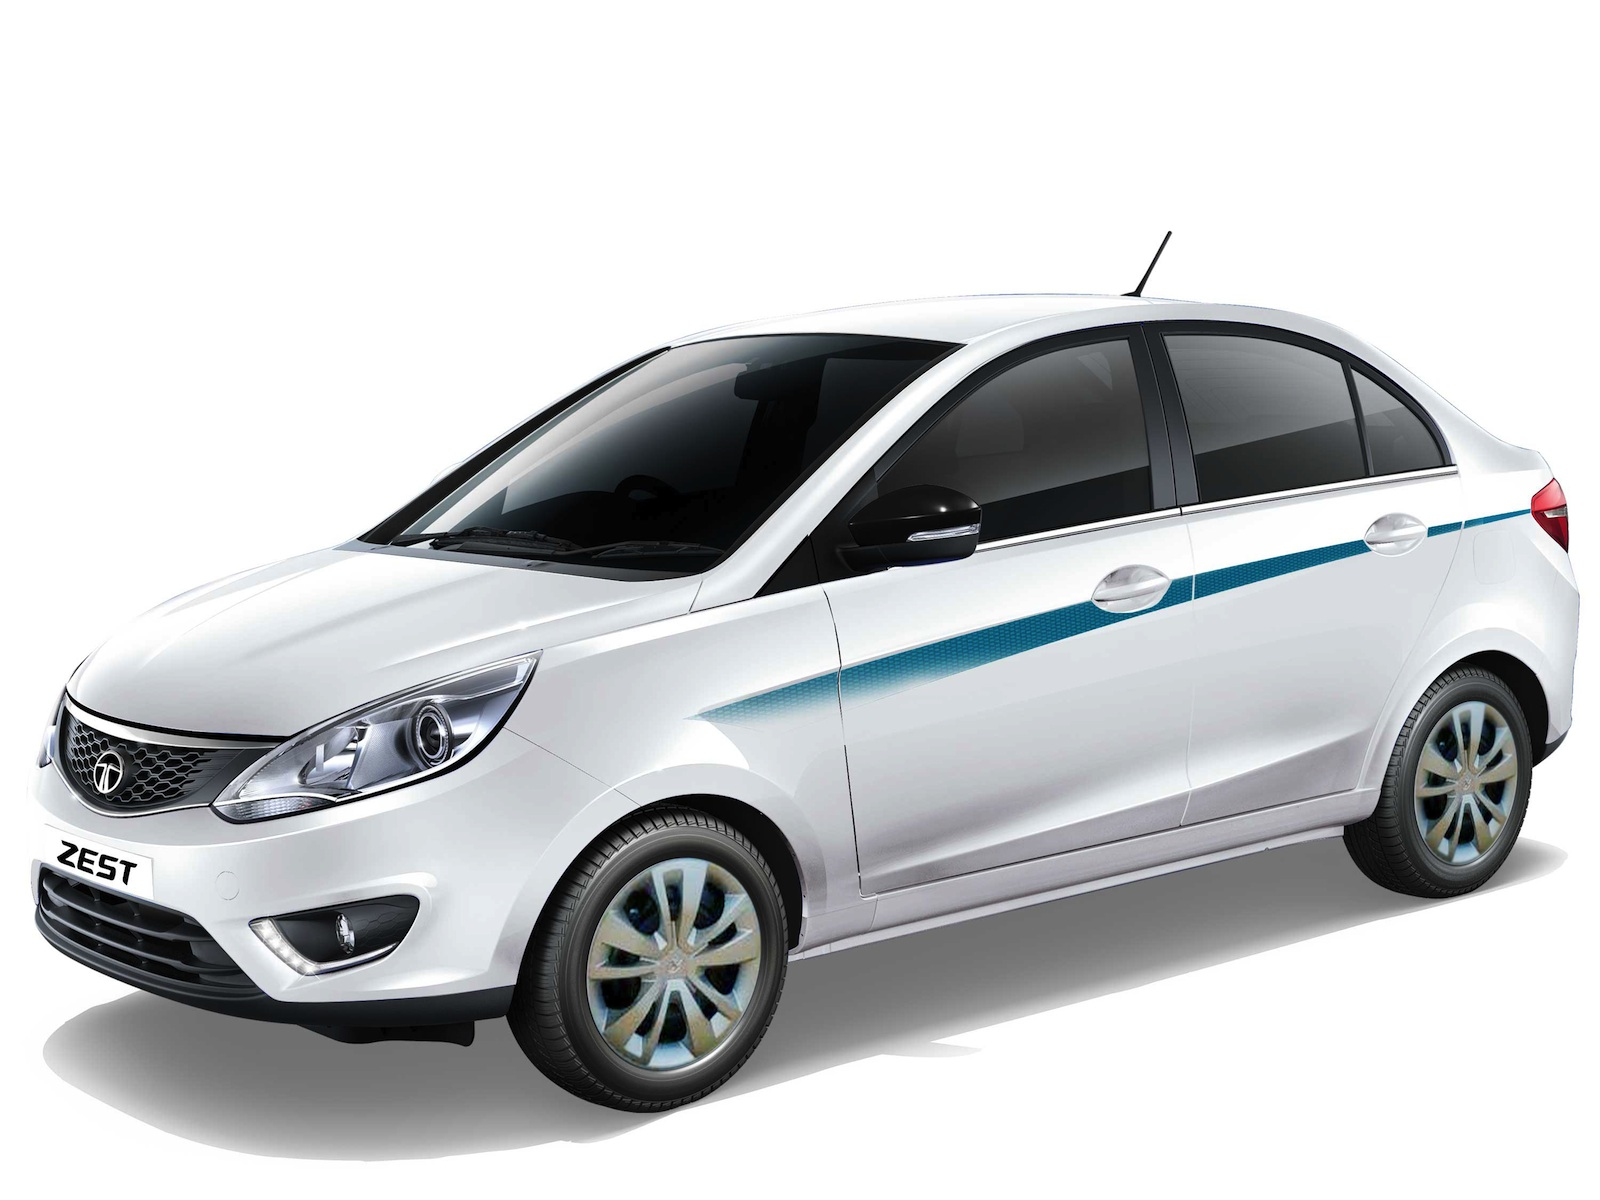 Tata-Zest-Anniversary-Edition-image-official-side